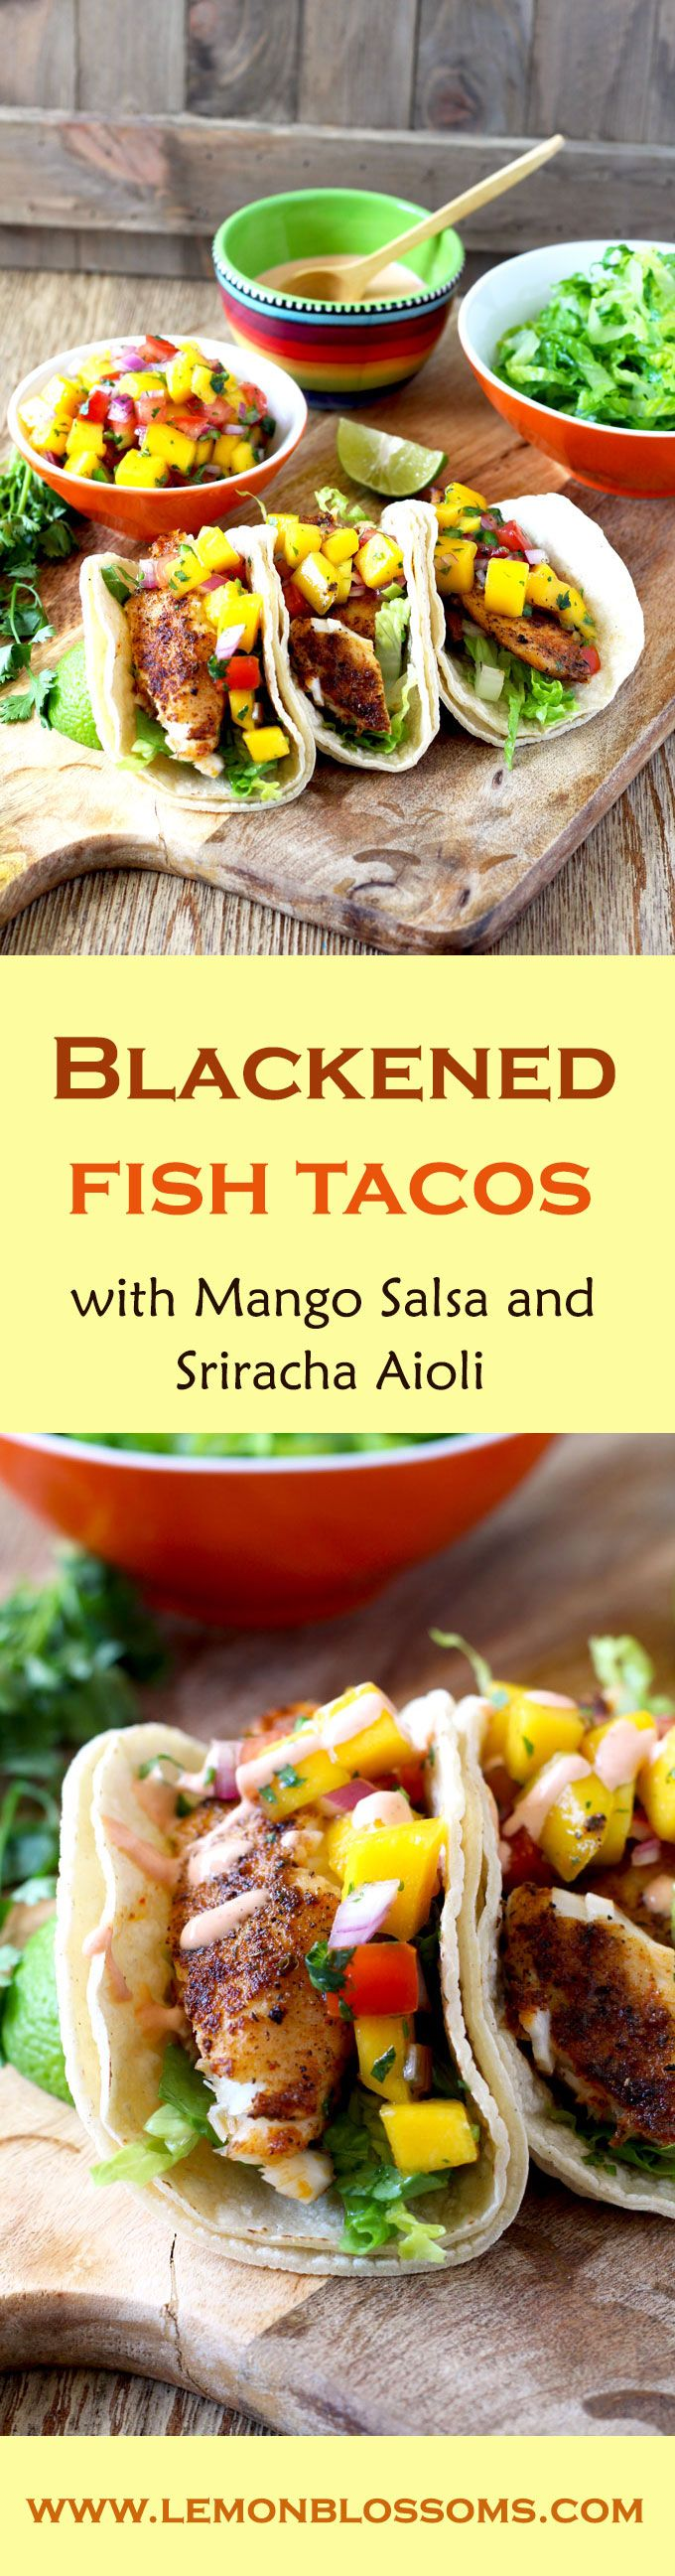 Full flavored, healthy and easy to make Blackened Fish Tacos with Mango Salsa and Sriracha Aioli. Fish fillets coated in a Cajun inspired spice mix served in warm tortillas and topped with a fresh and tasty mango salsa. Finish it up with a drizzle of creamy and spicy sriracha aioli for the best tacos ever!!! via @https://www.pinterest.com/lmnblossoms/